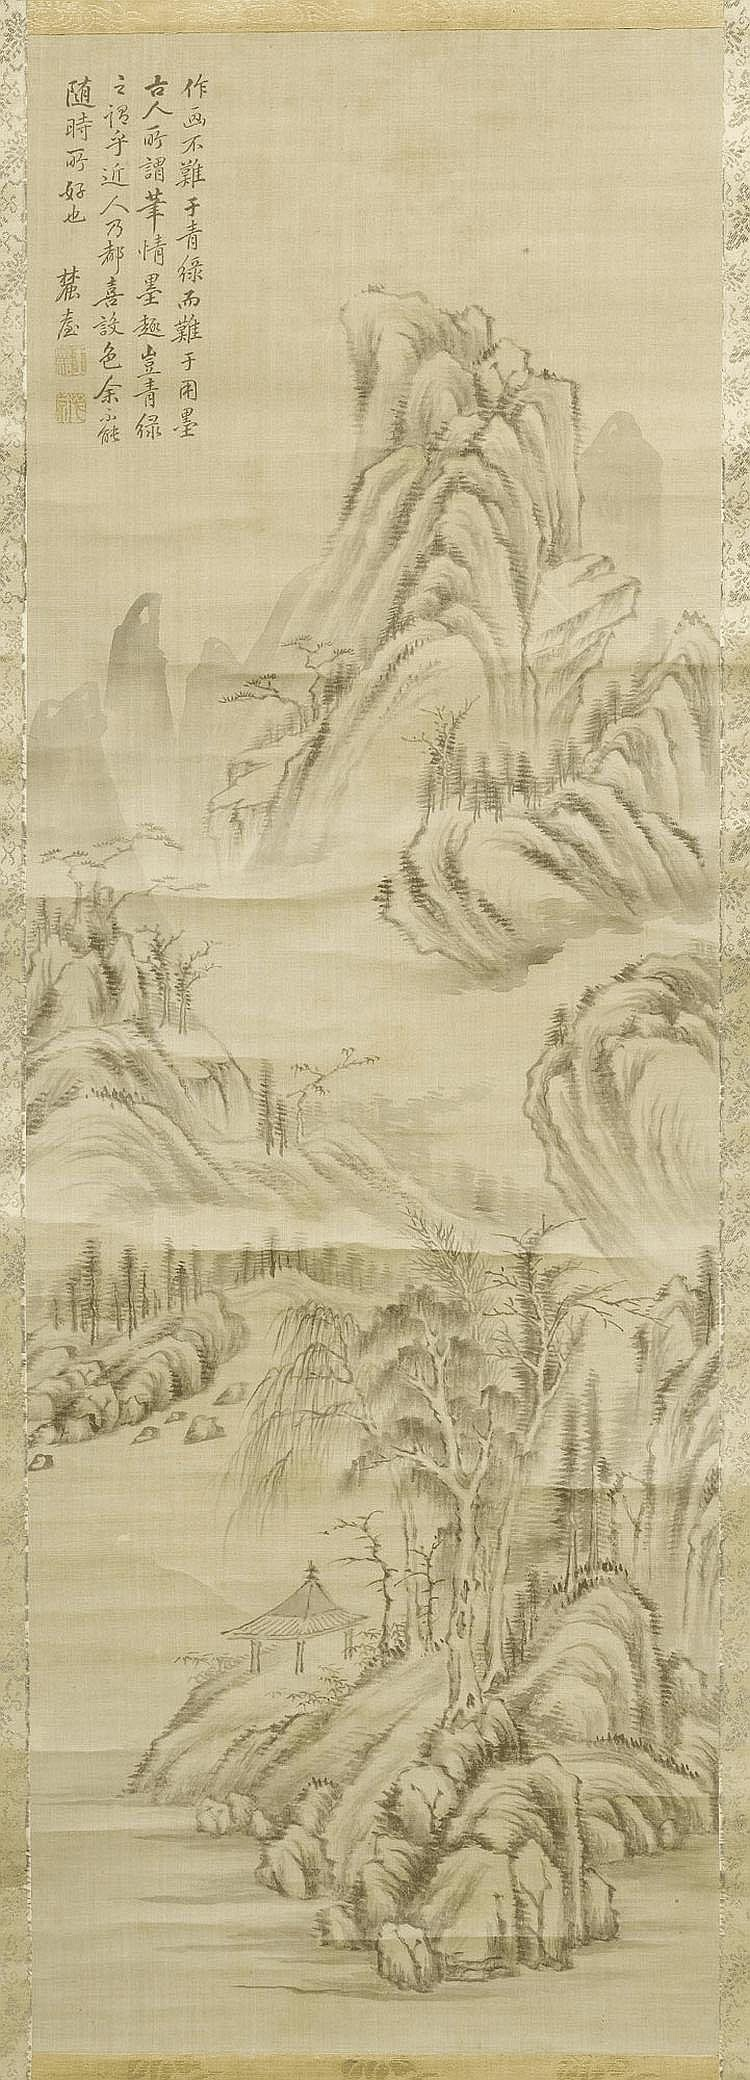 LANDSCAPE IN THE STYLE OF WANG YUANQI (1642-1715).